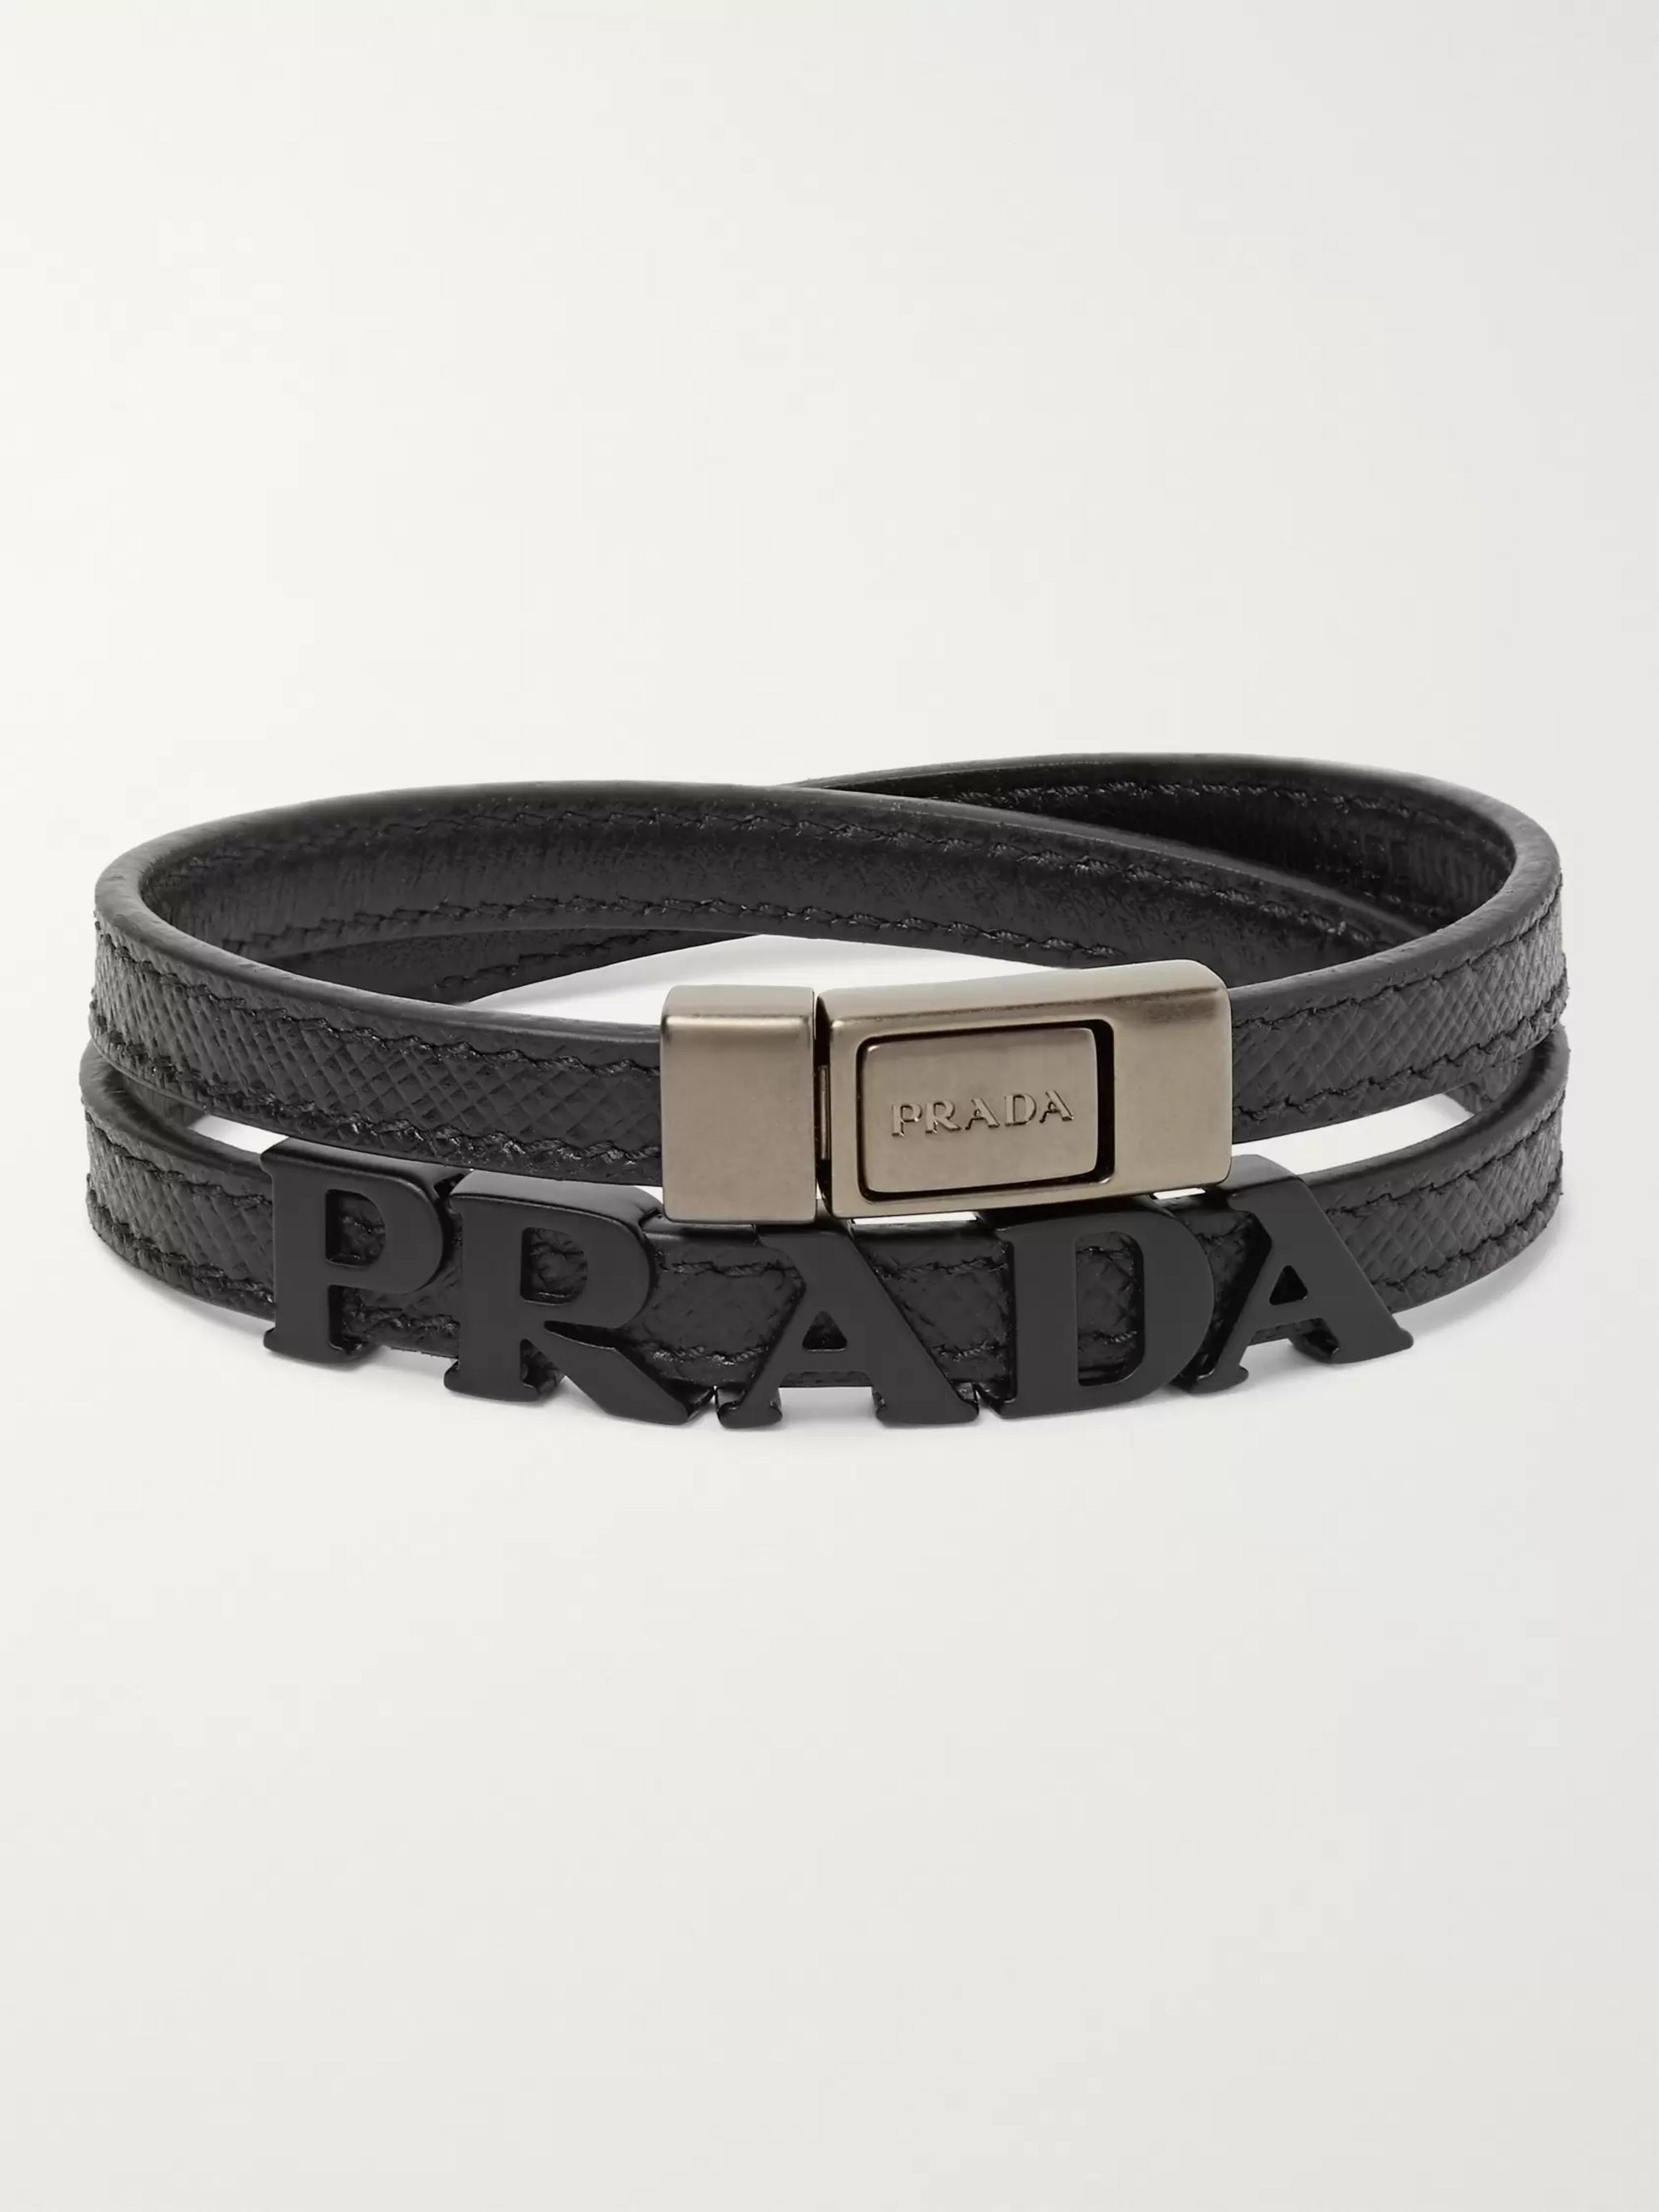 Prada Logo-Detailed Saffiano Leather and Metal Wrap Bracelet